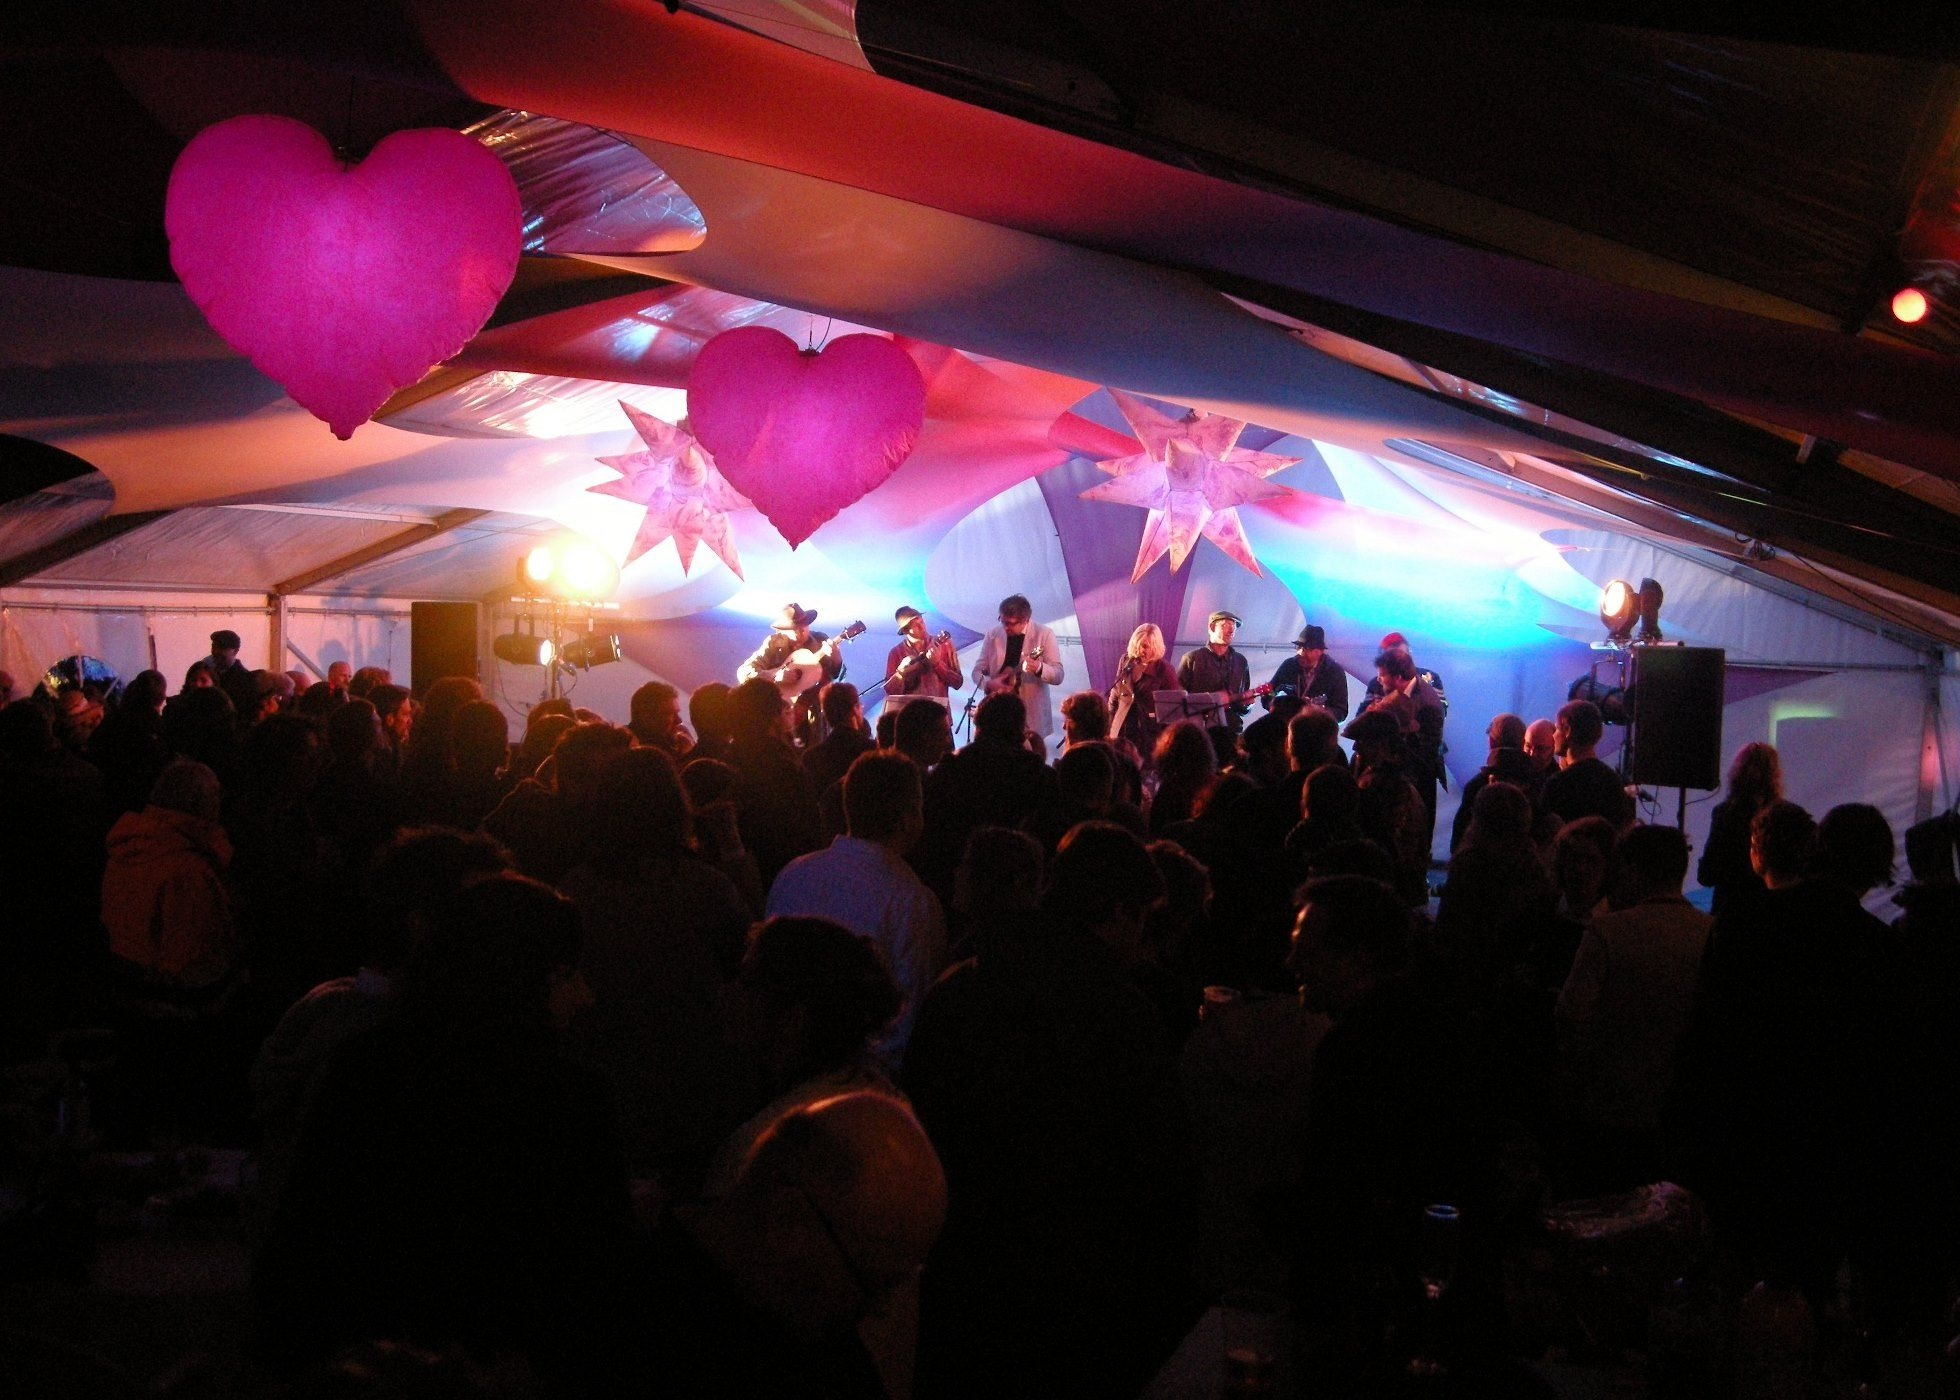 Inside of marquee at night with crowd watching Ukelele band on stage, inflatables & stretch lycra decor